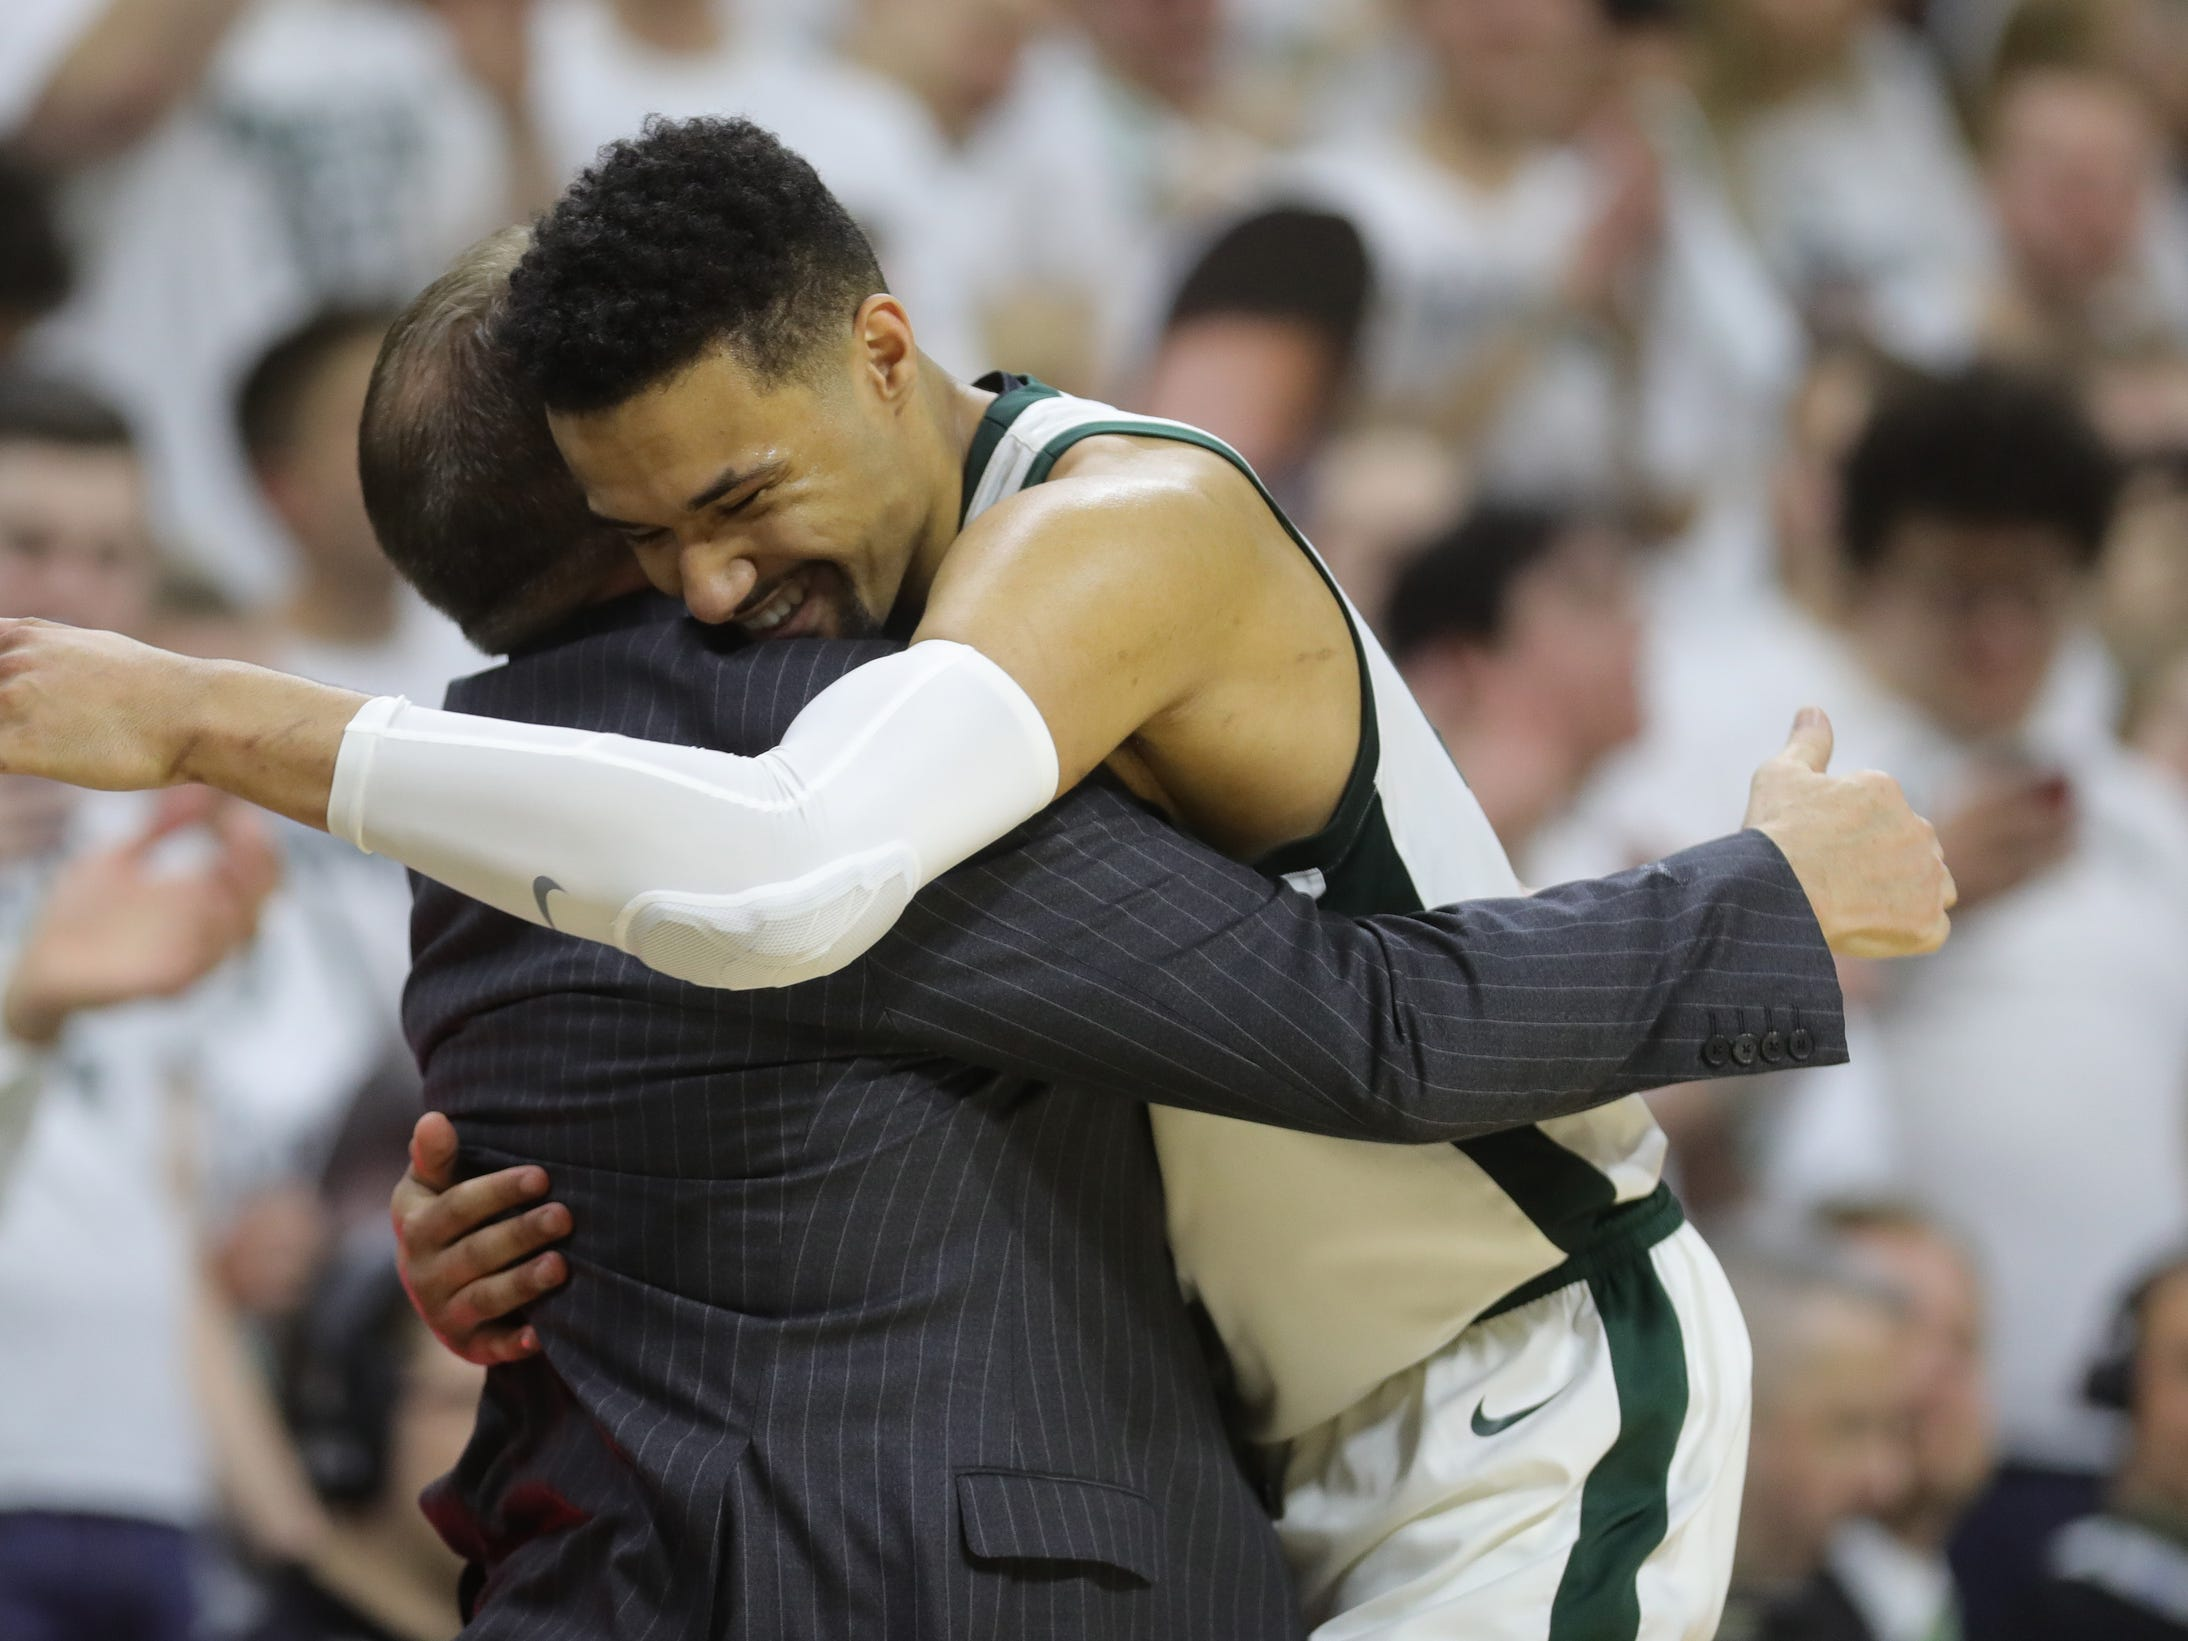 Michigan State coach Tom Izzo hugs forward Kenny Goins, after the 75-63 win against Michigan, March 9, 2019 at the Breslin Center in East Lansing.